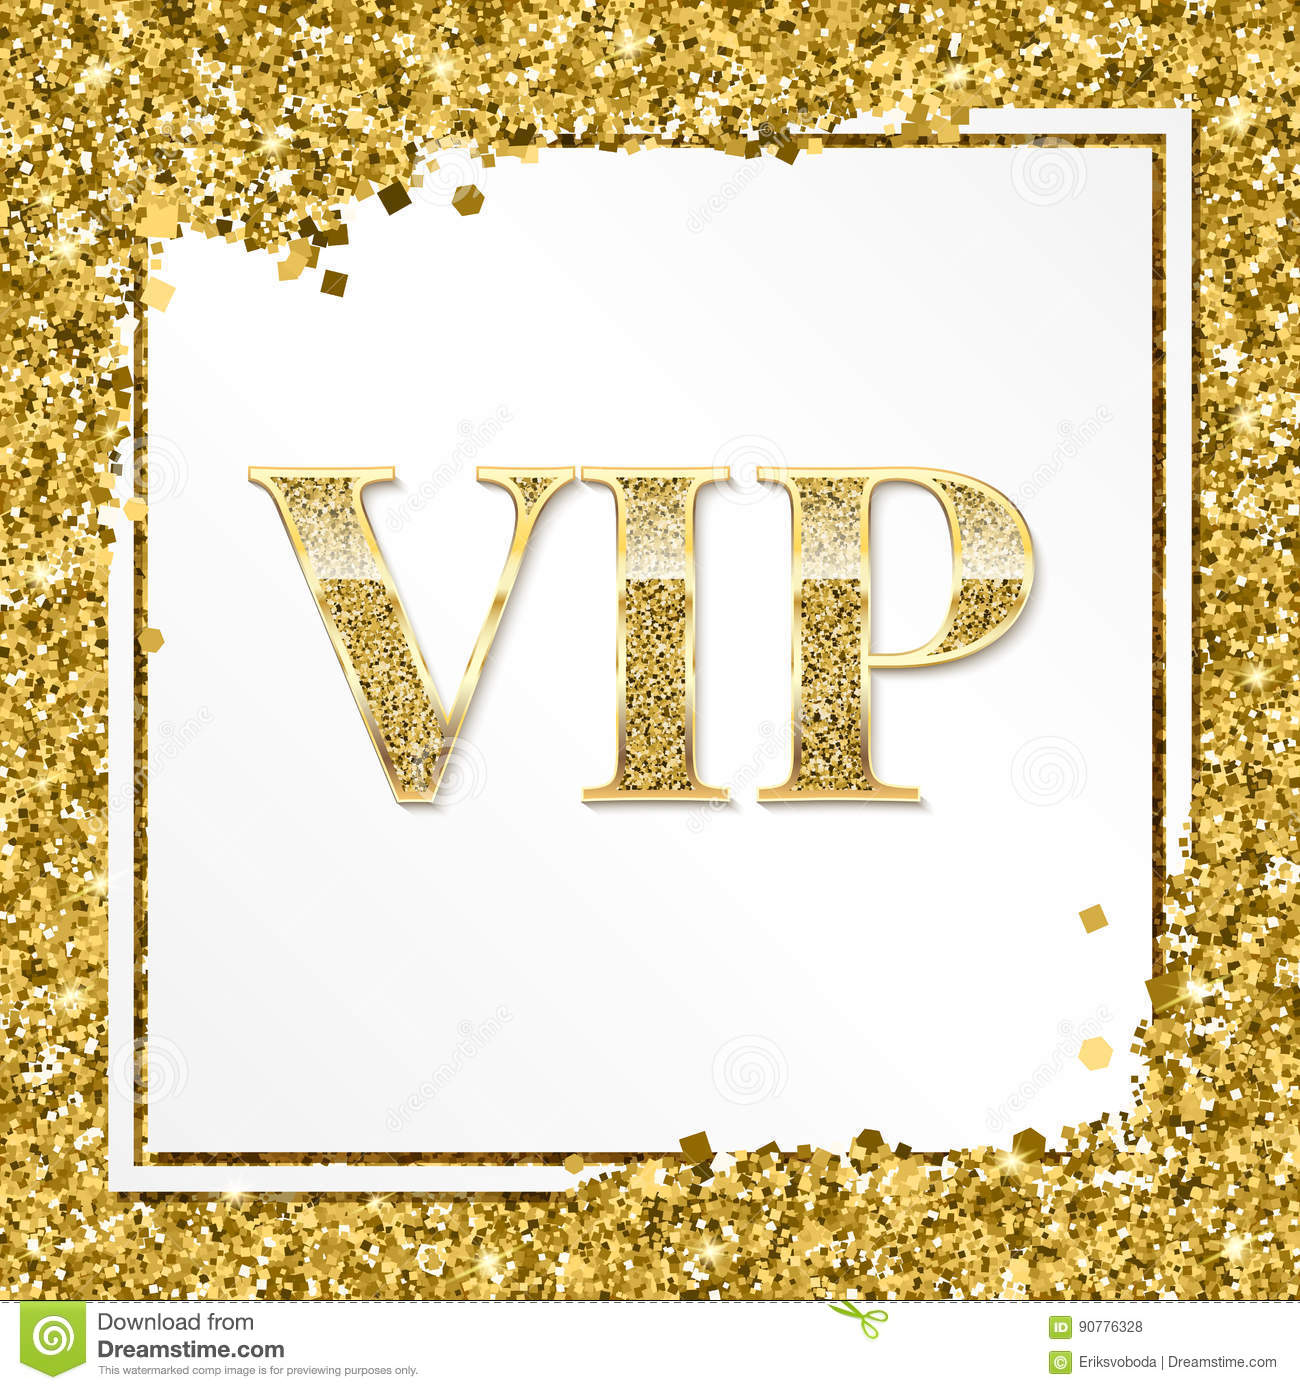 VIP premium invitation card, poster or flyer for party. Golden design template with glittering shine text. Decorative